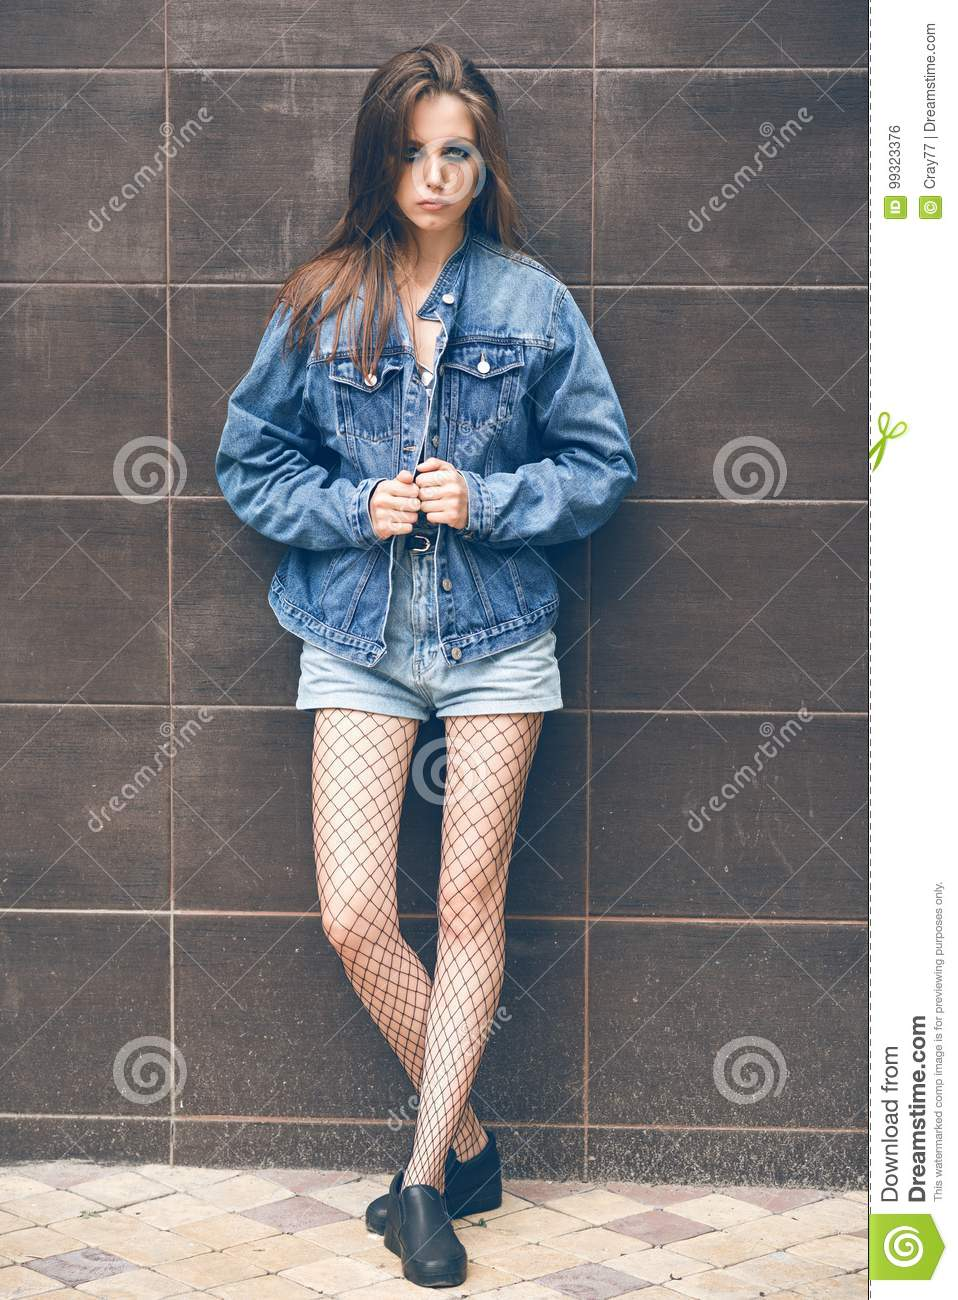 b2722df8a01 Beautiful girl in denim shorts and jeans jacket in the street. Rock style. Fashionable  girl. Dark background. Beautiful